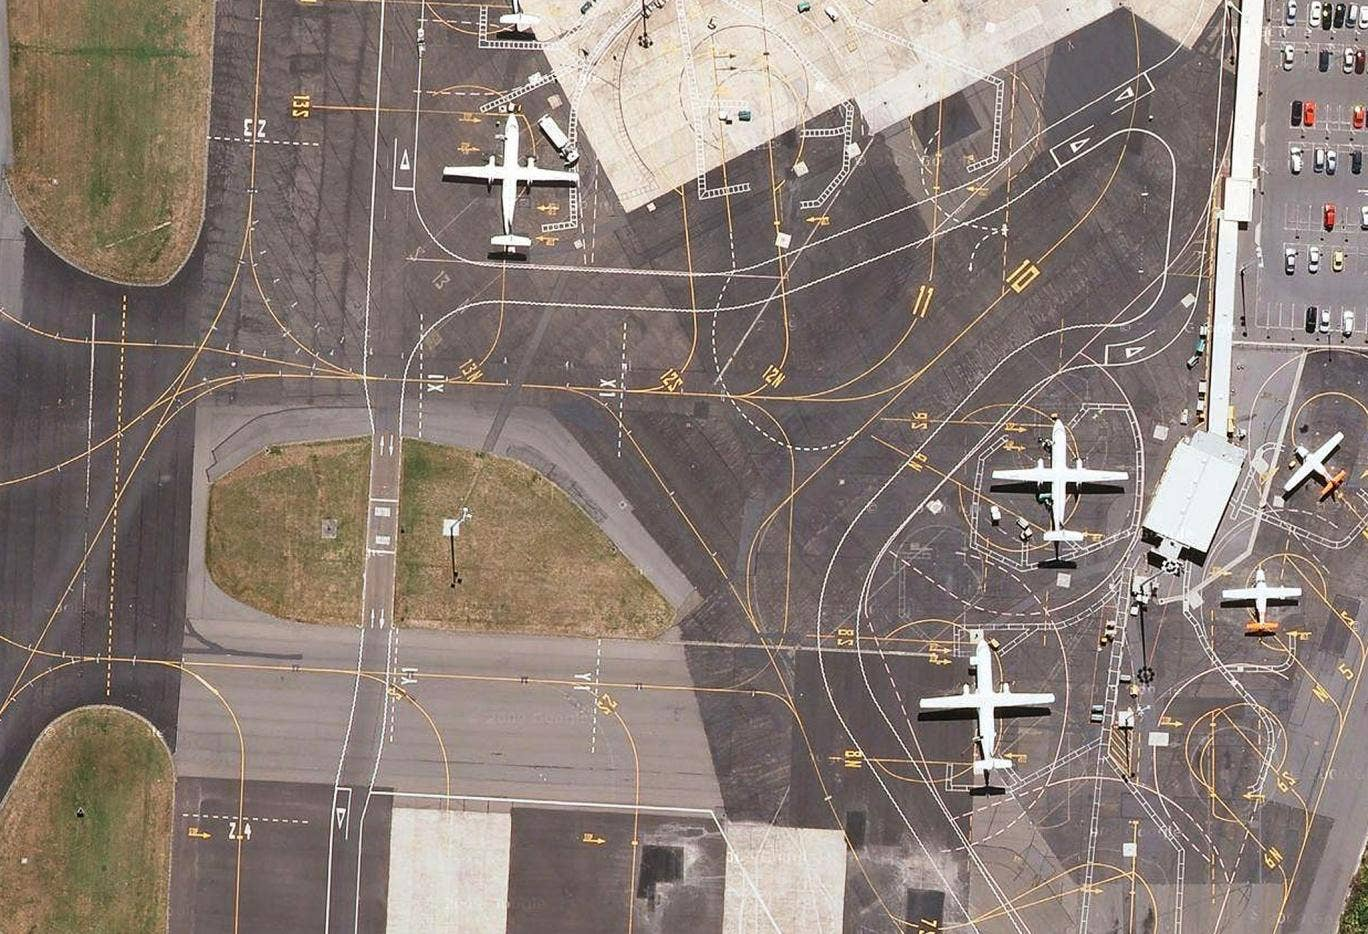 The image of New Zealand's Wellington International Airport, is among O'Neill's favourites